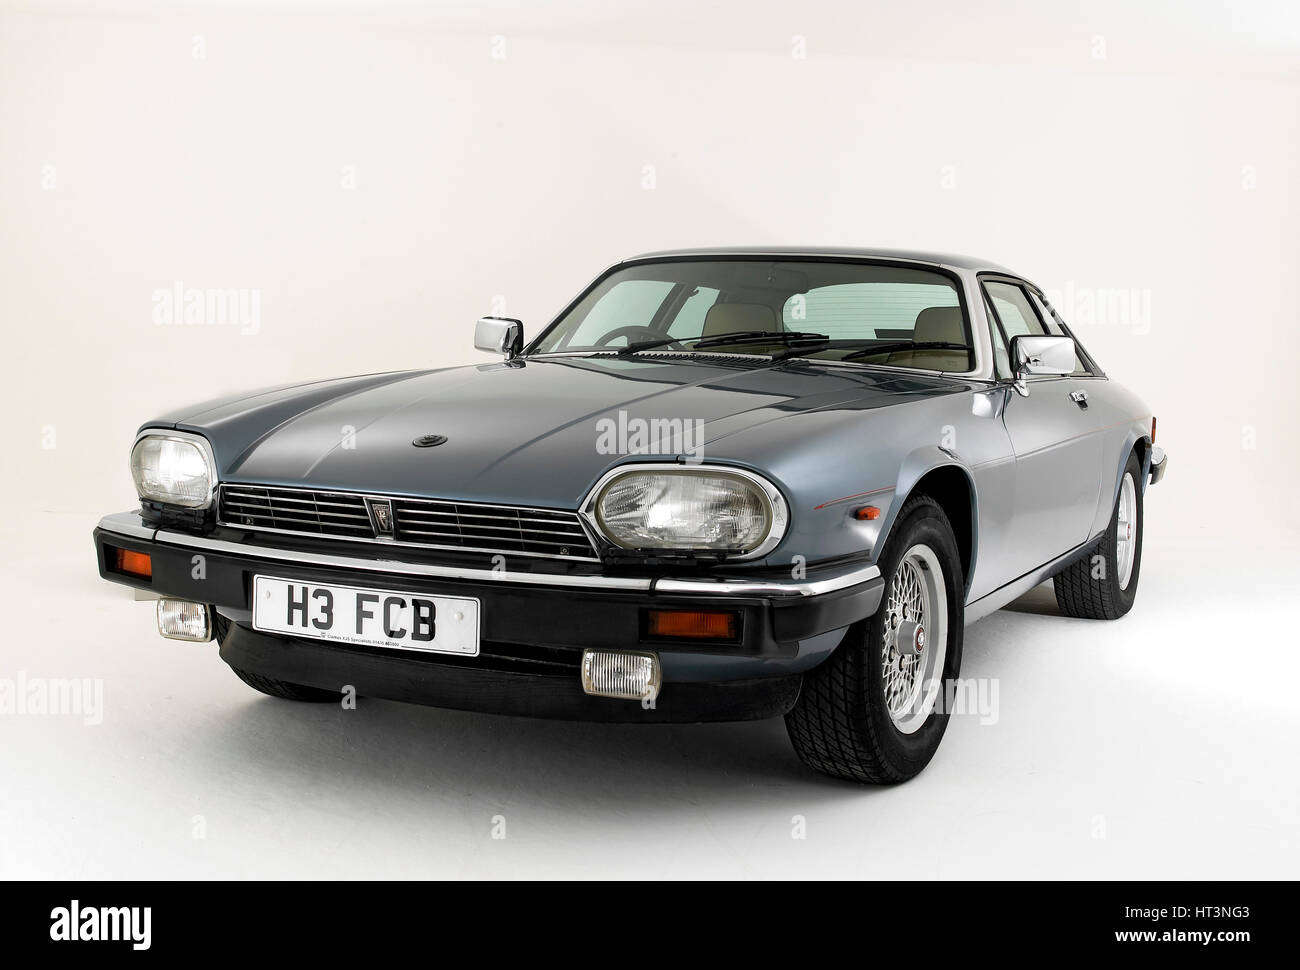 1991 jaguar xjs v12 artist: unknown  - stock image